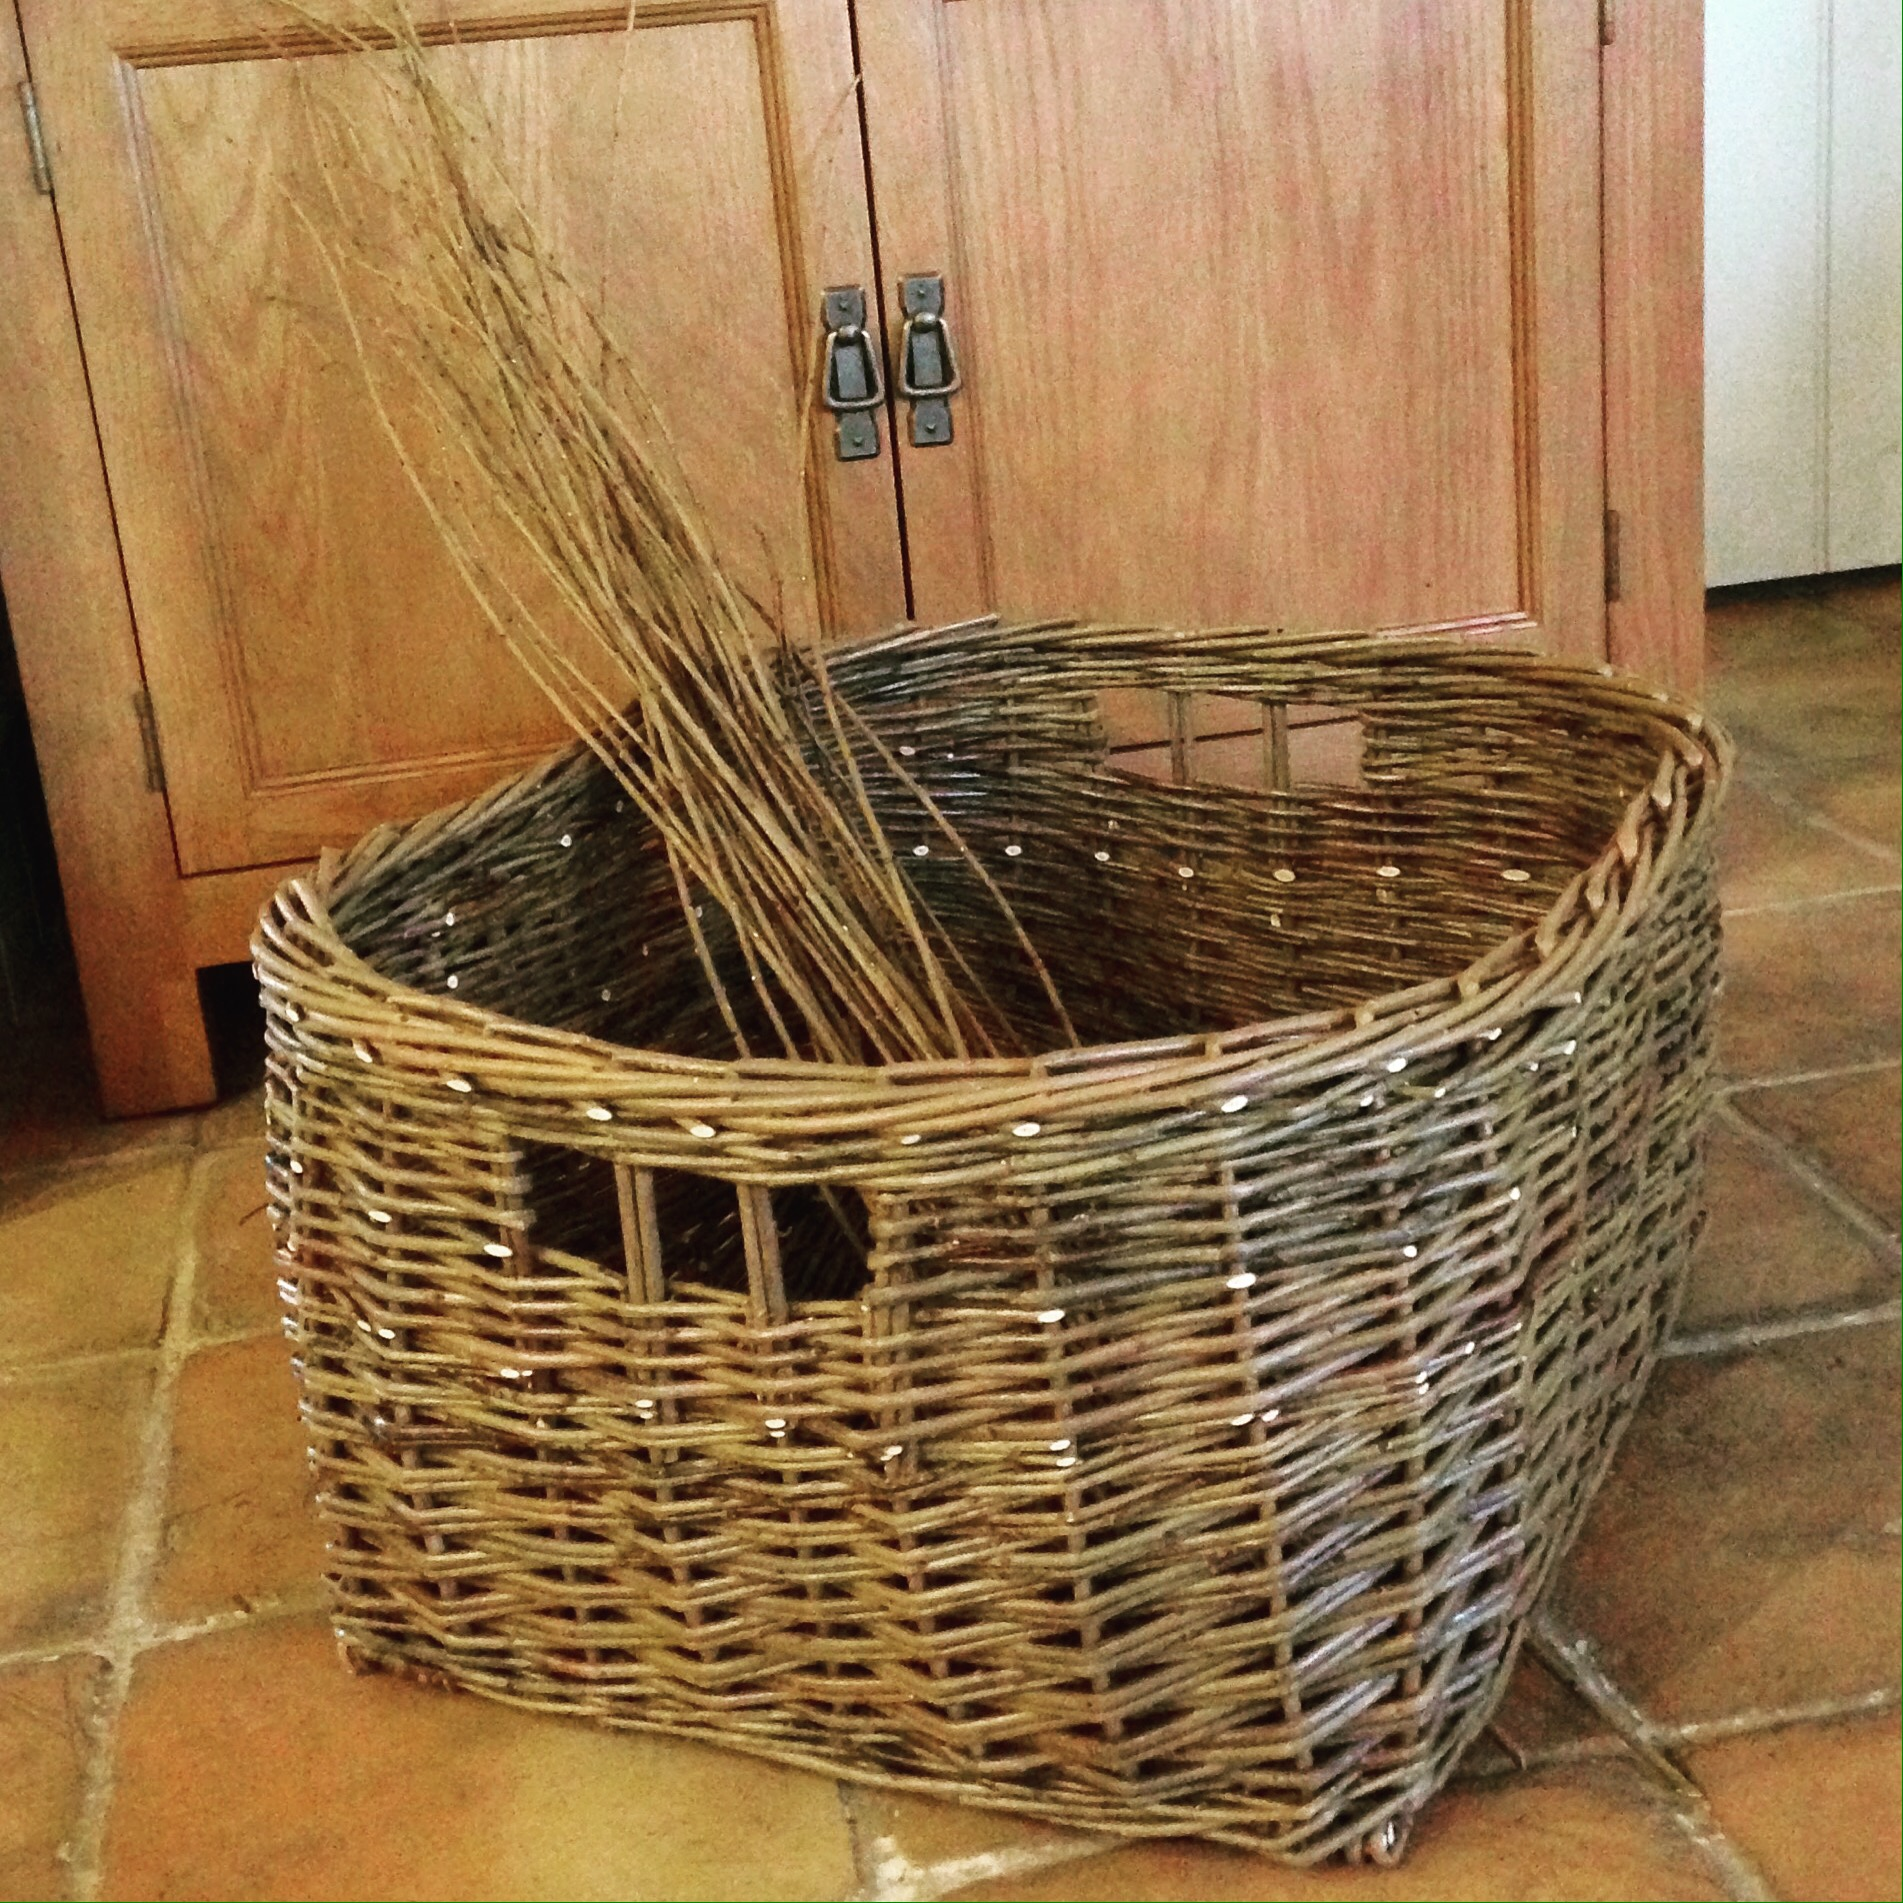 Uncategorized Shoe Basket march 2017 karen lawrence basketry ive had a productive day today so lovely to have full in thevworkshop finished this shoe basket for friends that got married last saturday